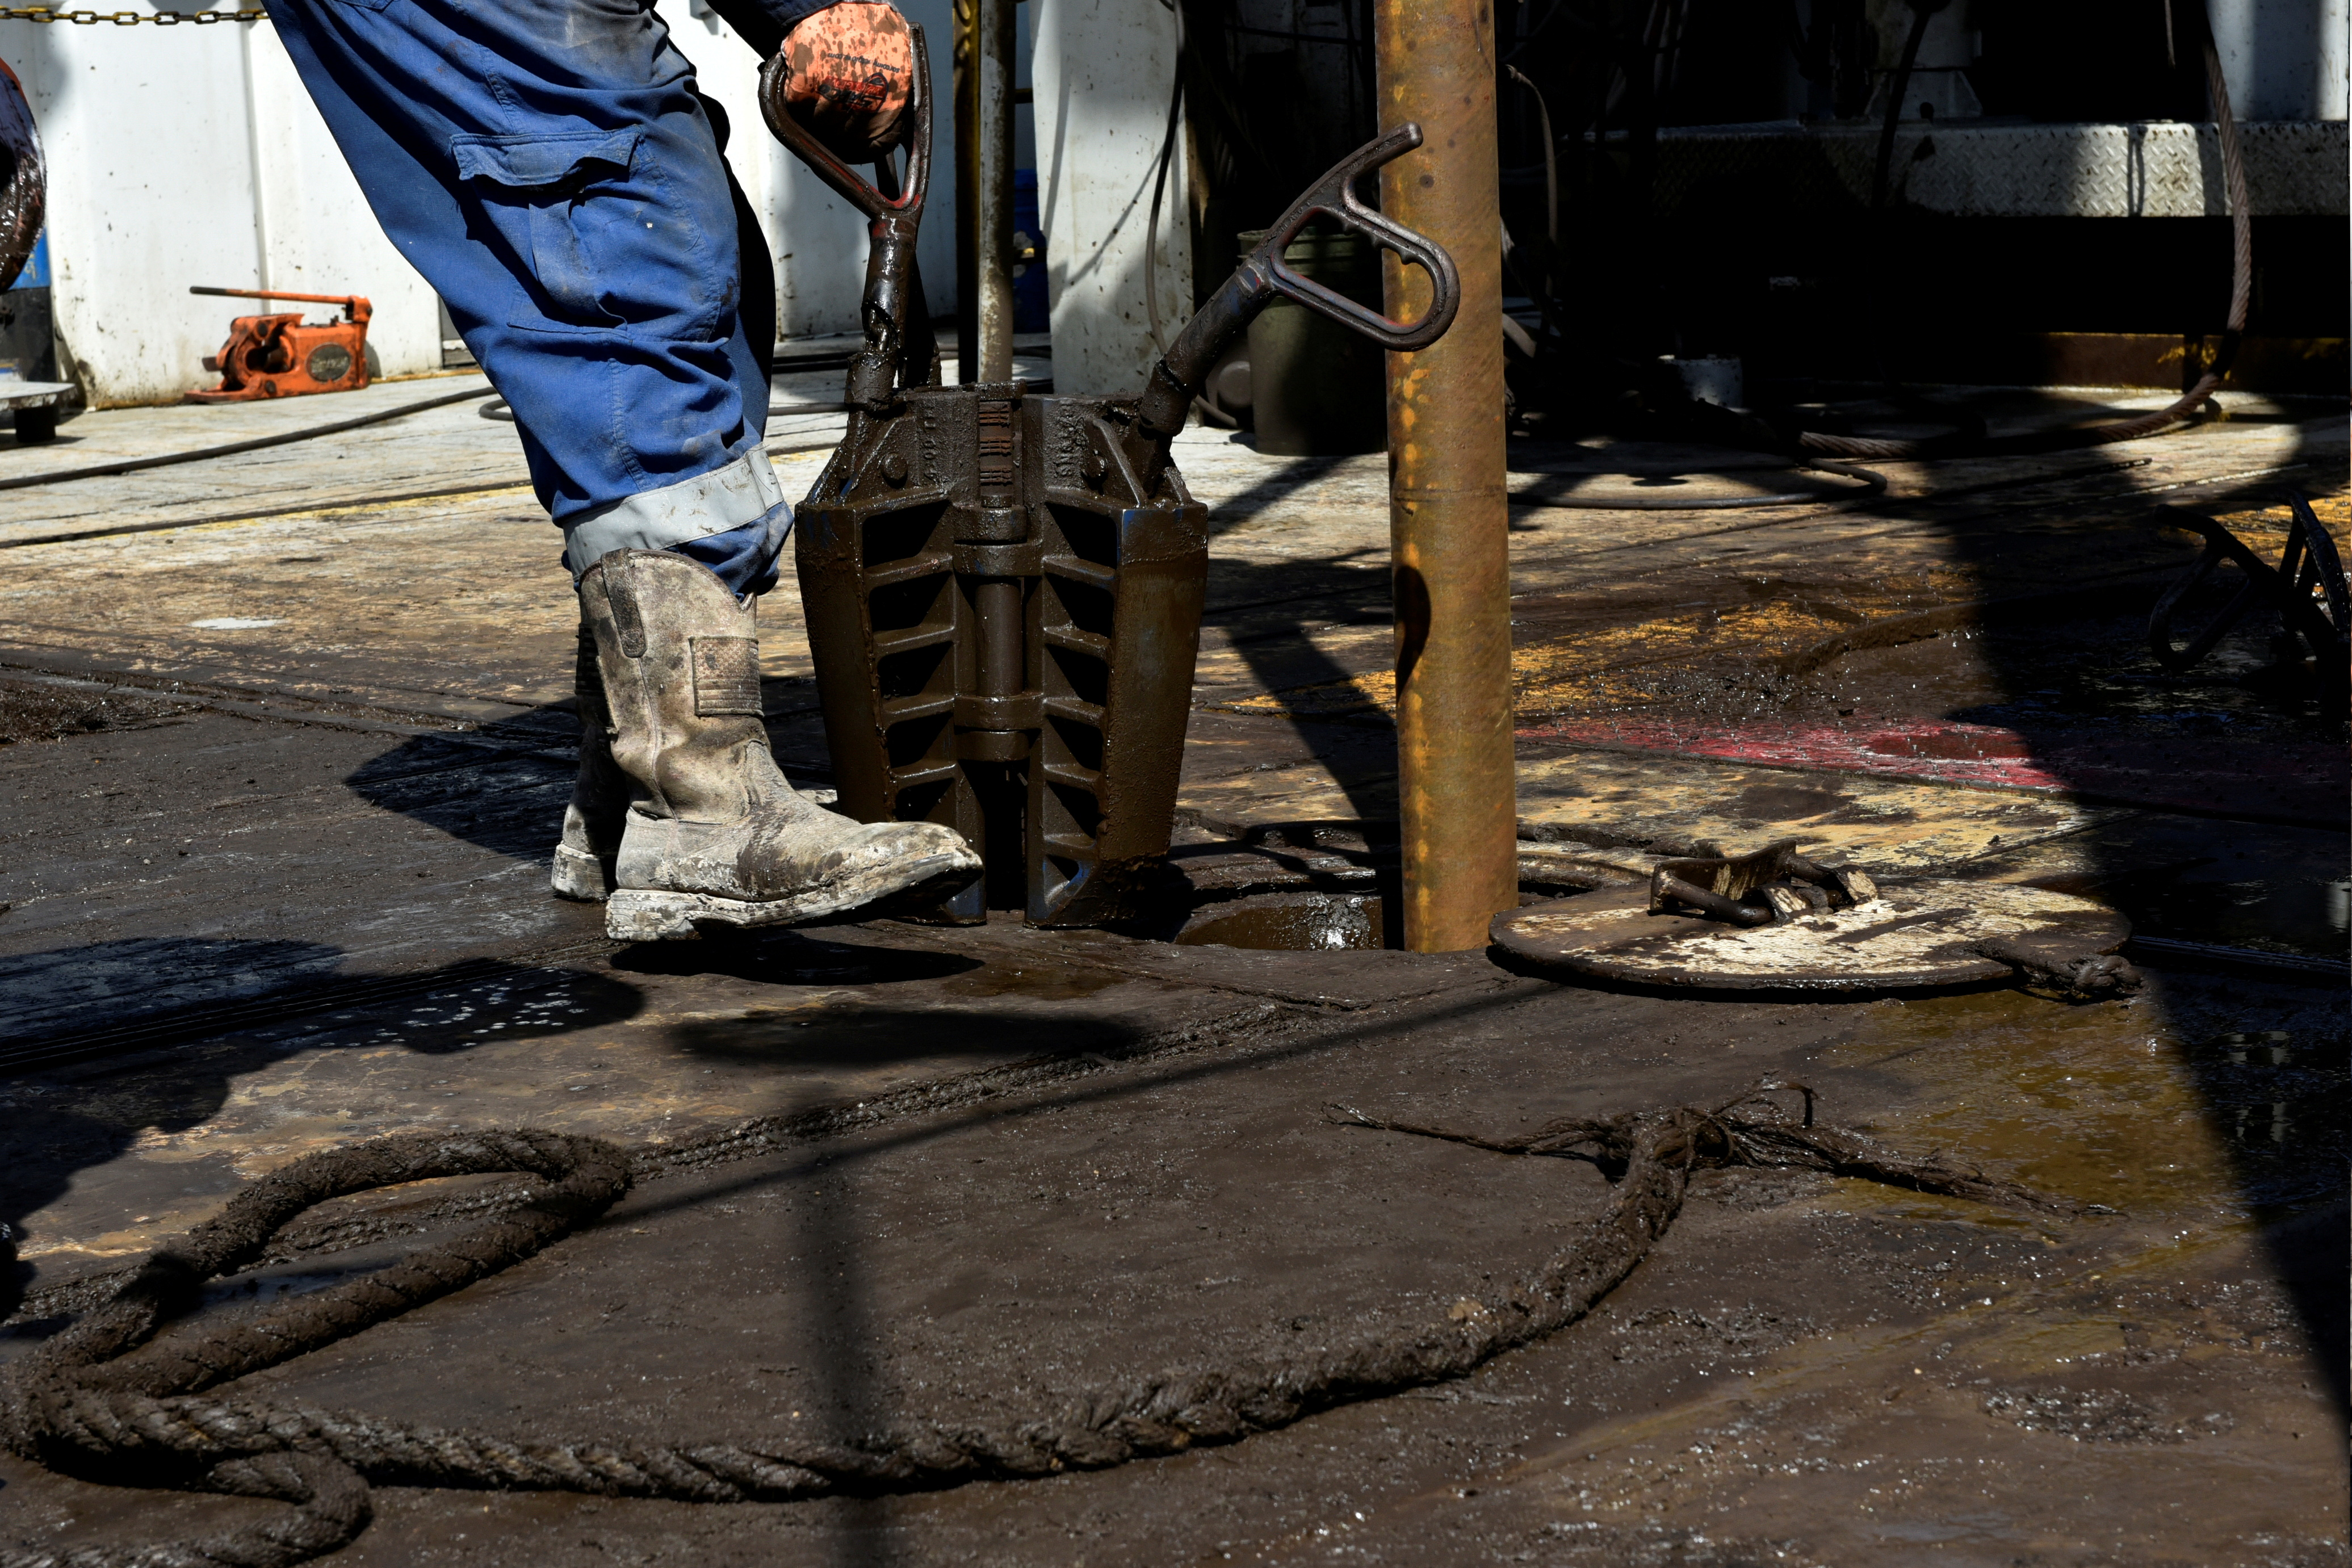 A member of a drilling crew prepares to place a collar around drill pipe on an oil rig in the Permian Basin near Wink, Texas U.S. August 22, 2018. Picture taken August 22, 2018. REUTERS/Nick Oxford